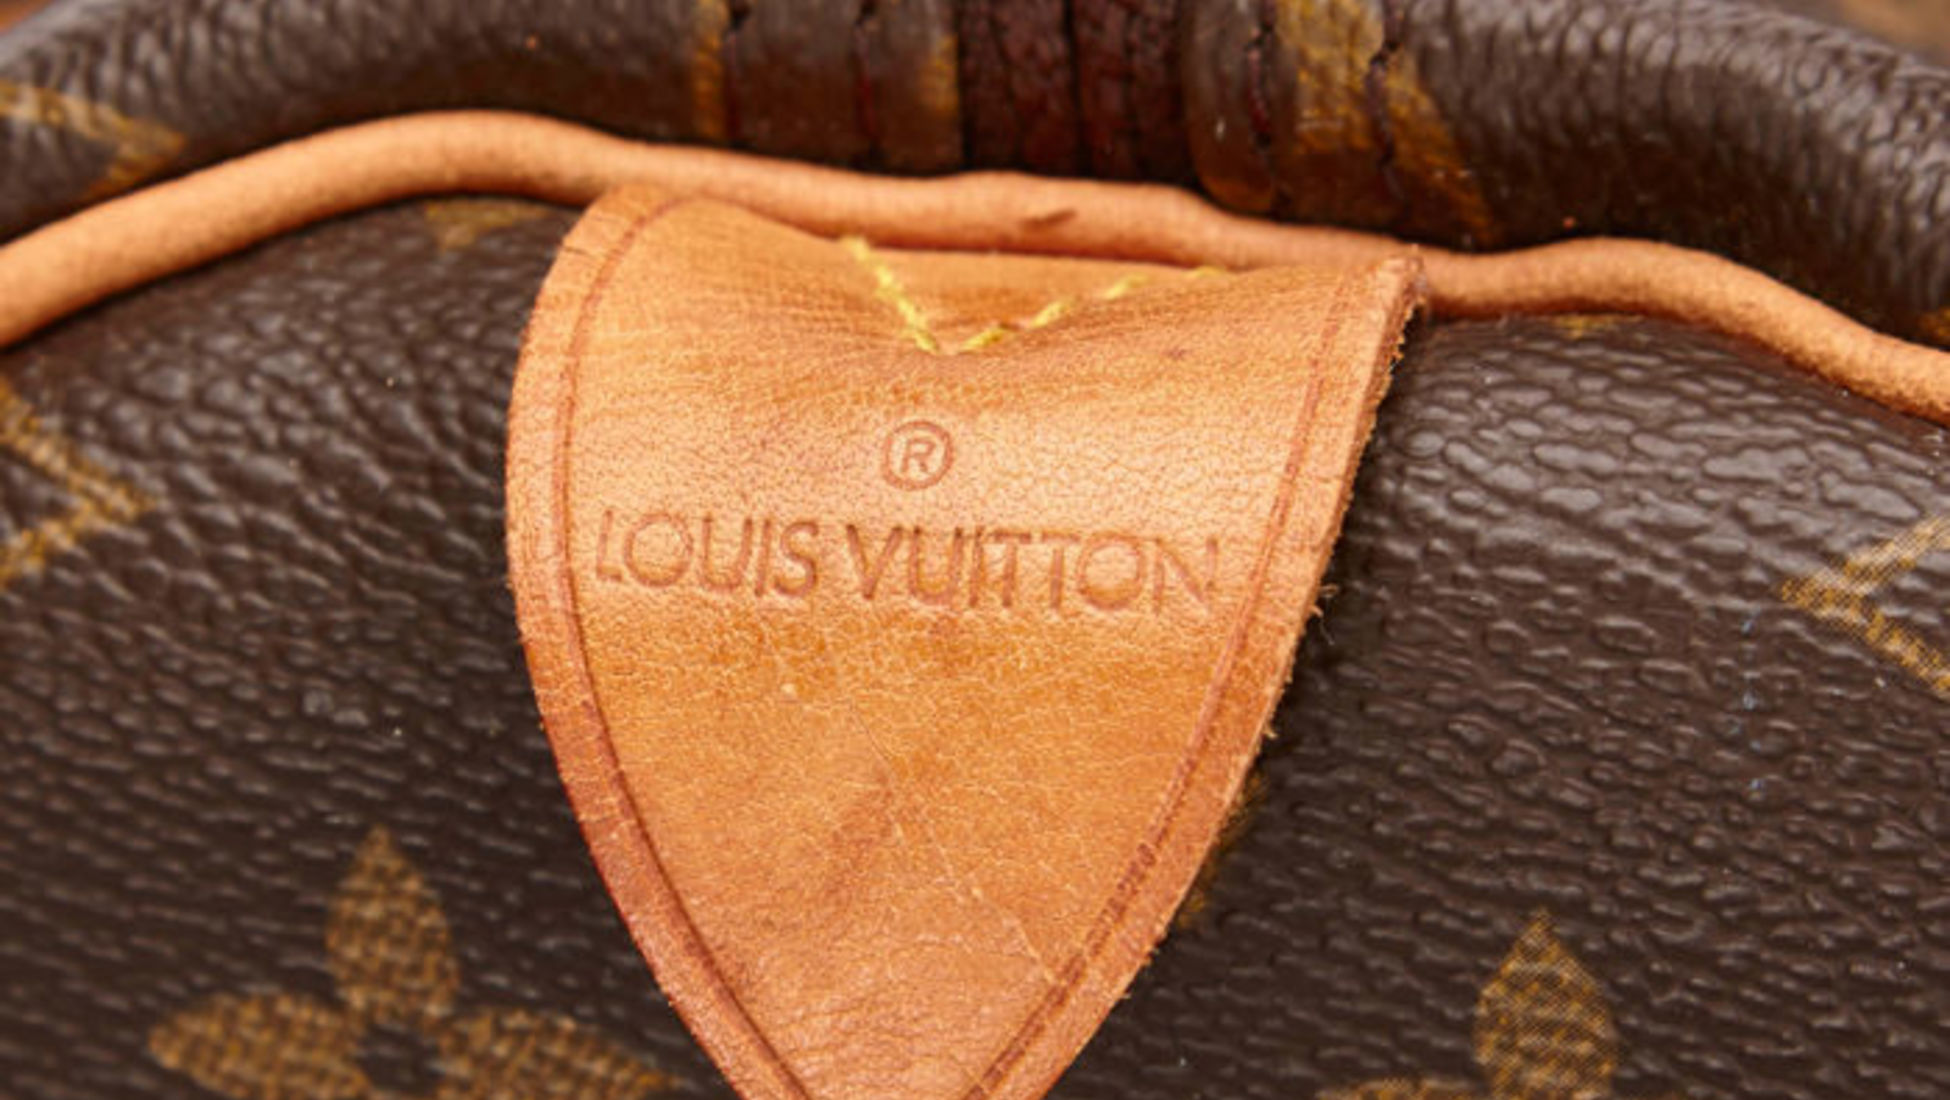 a443eb0c1e The Secret Behind the Success of Louis Vuitton - Catawiki